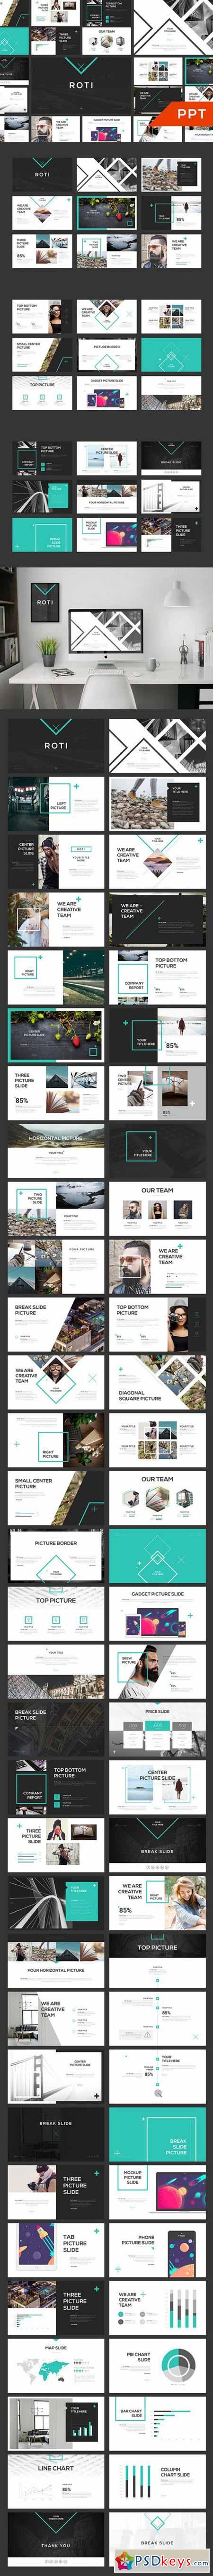 ROTI PowerPoint Template 581732